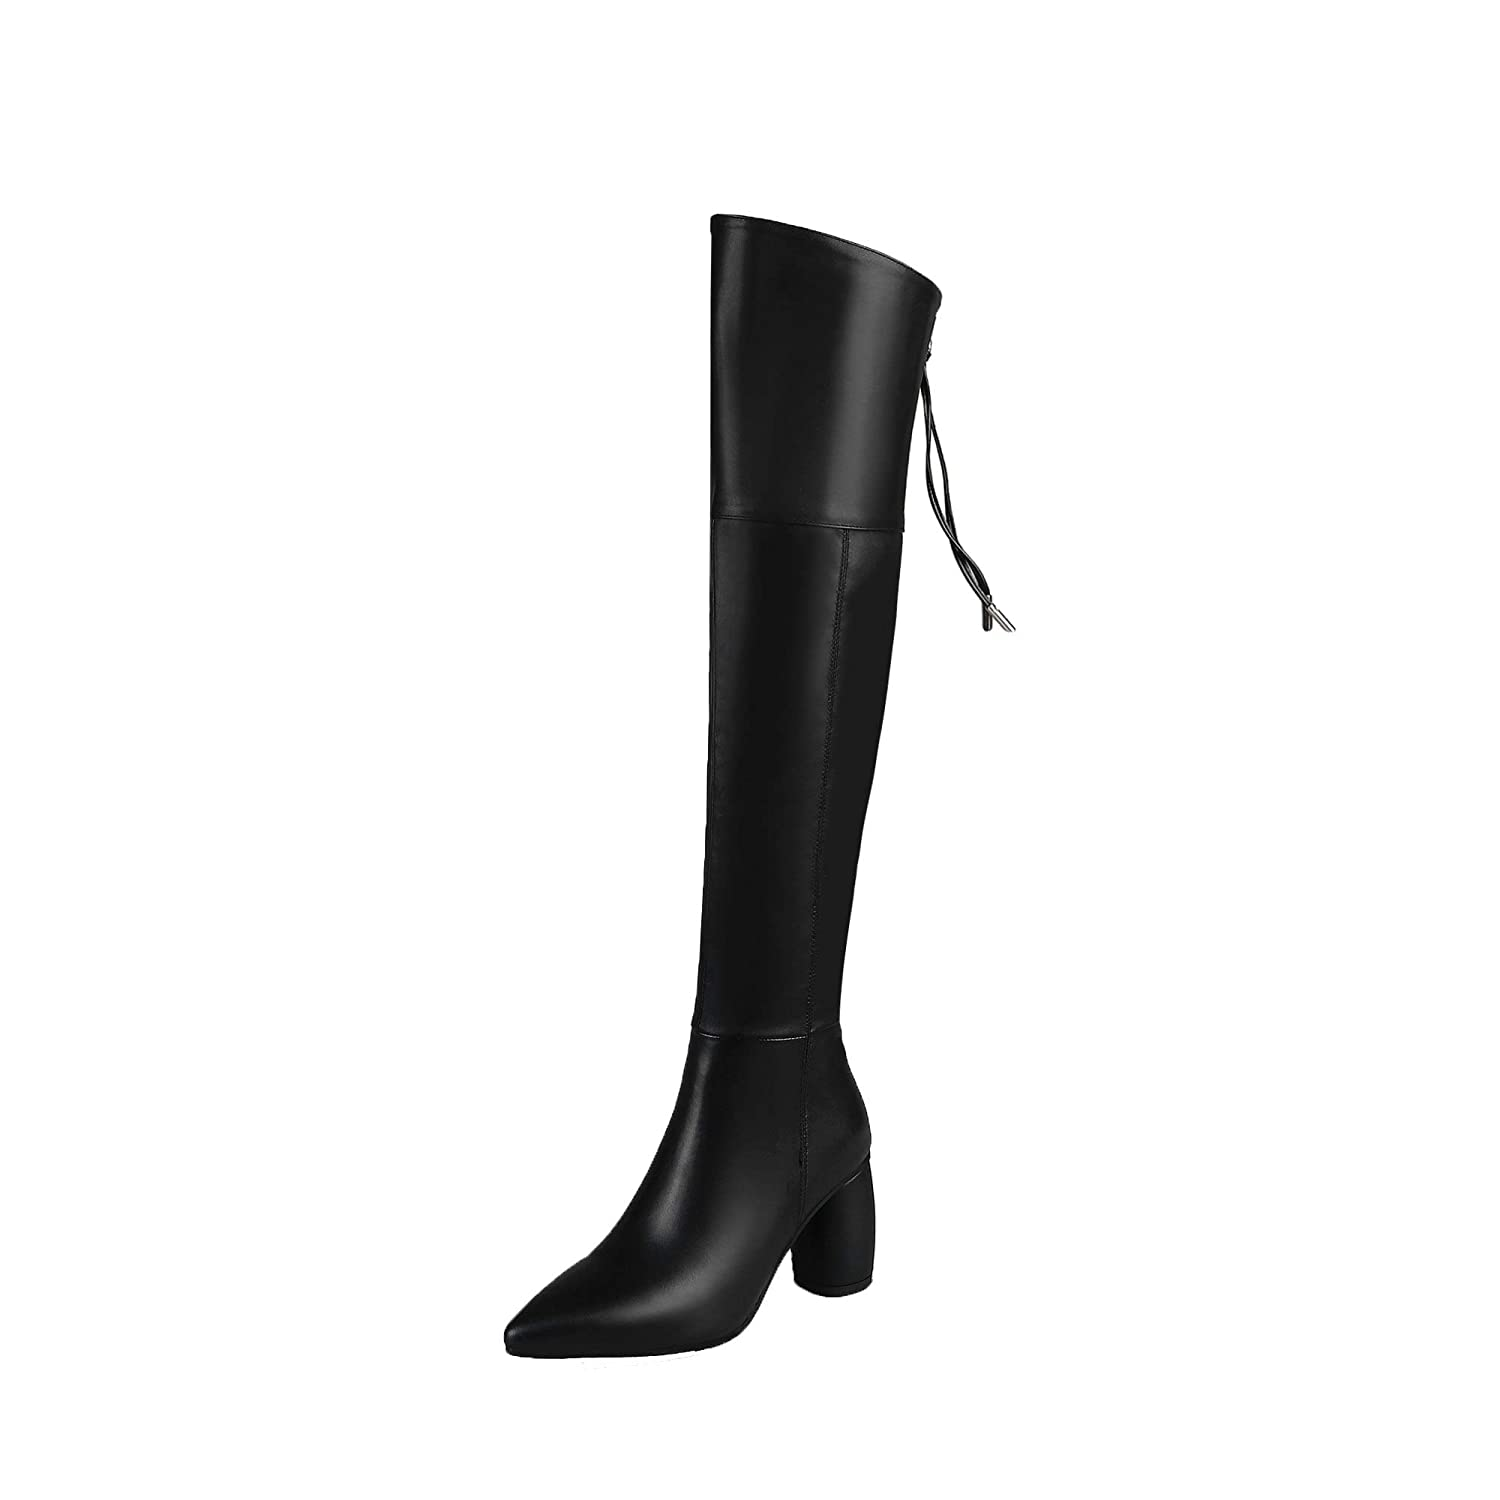 Black Coleter Women's Leather Over The Knee Boots